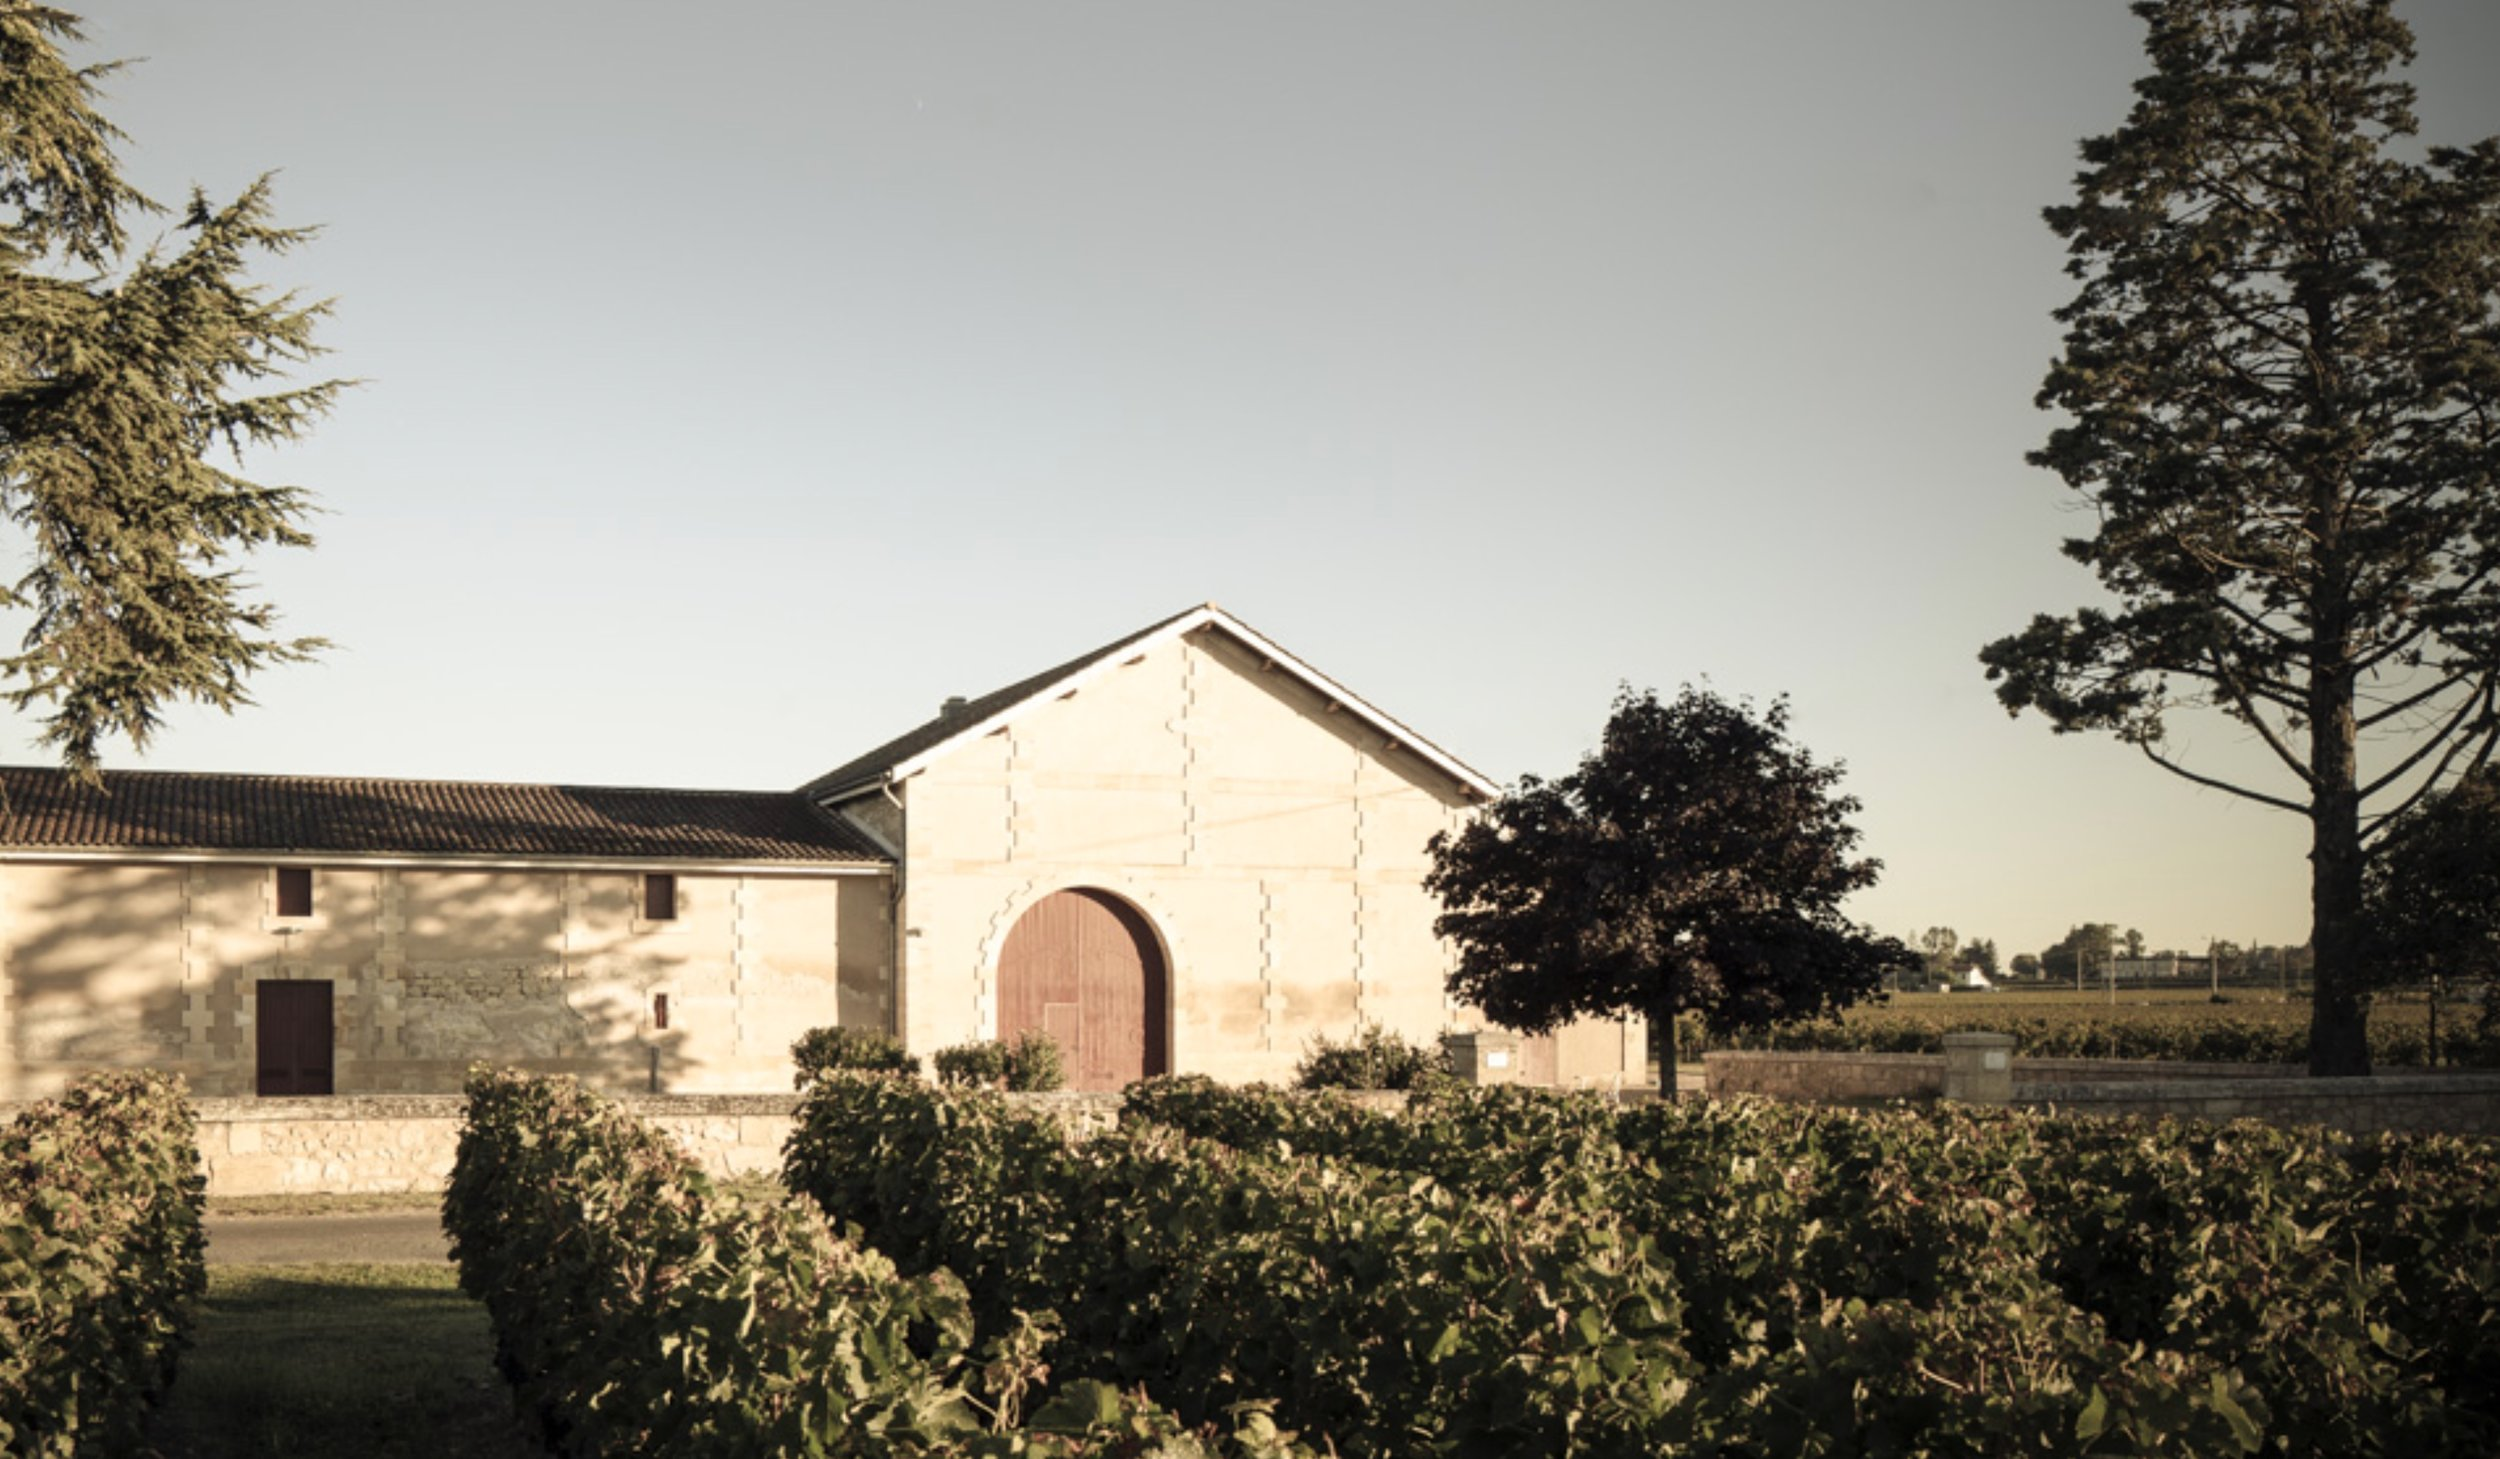 France_Chateau Mondorion_winery image.jpg